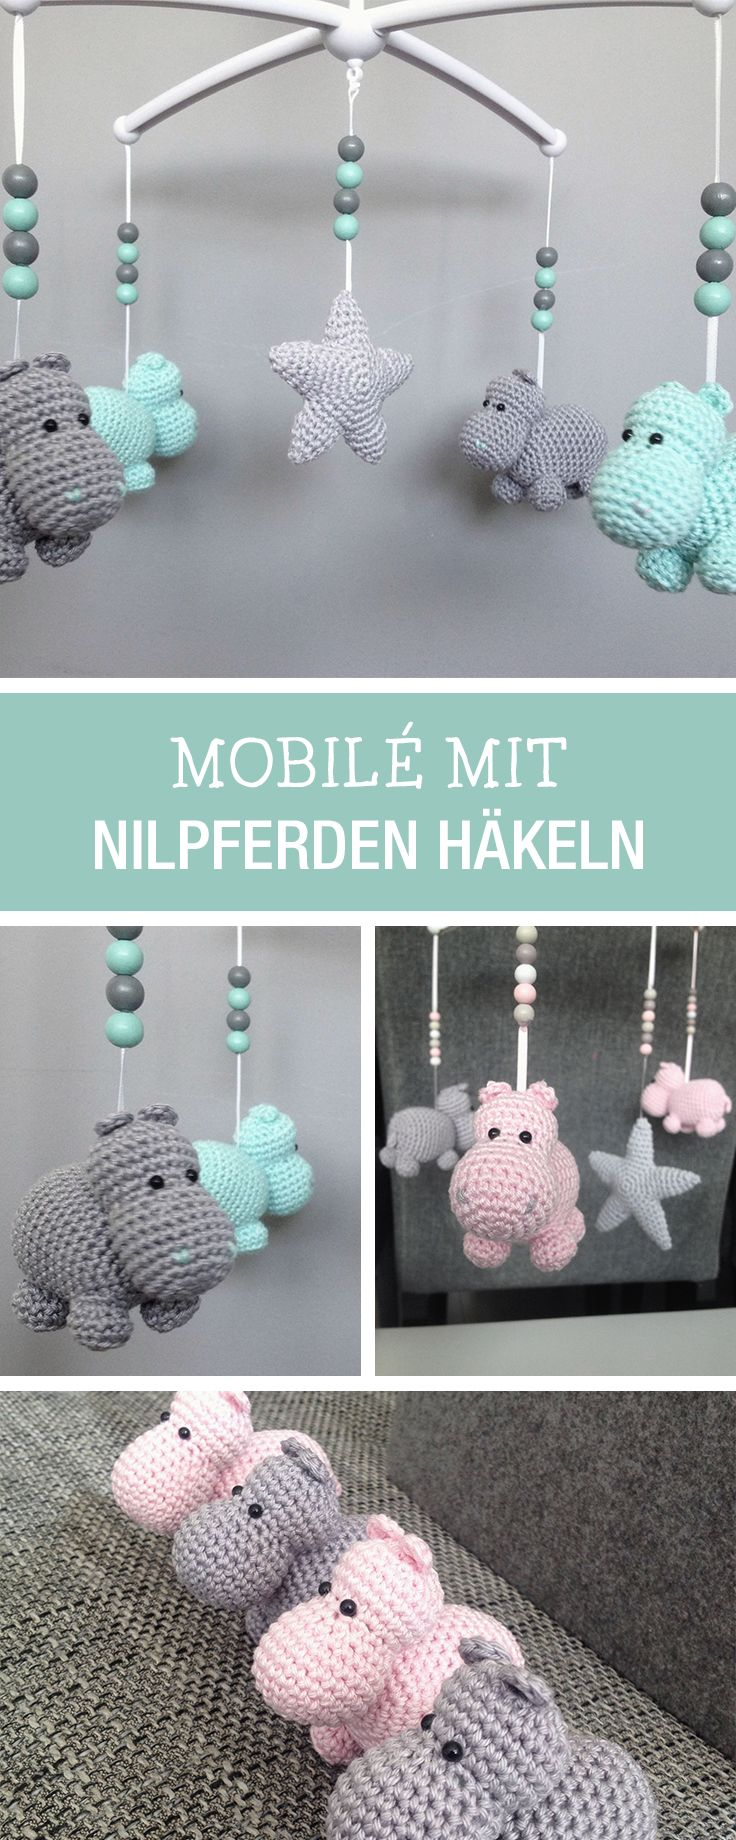 best 25 crochet mobile ideas on pinterest crocheted animals diy crochet on pinterest and owl. Black Bedroom Furniture Sets. Home Design Ideas